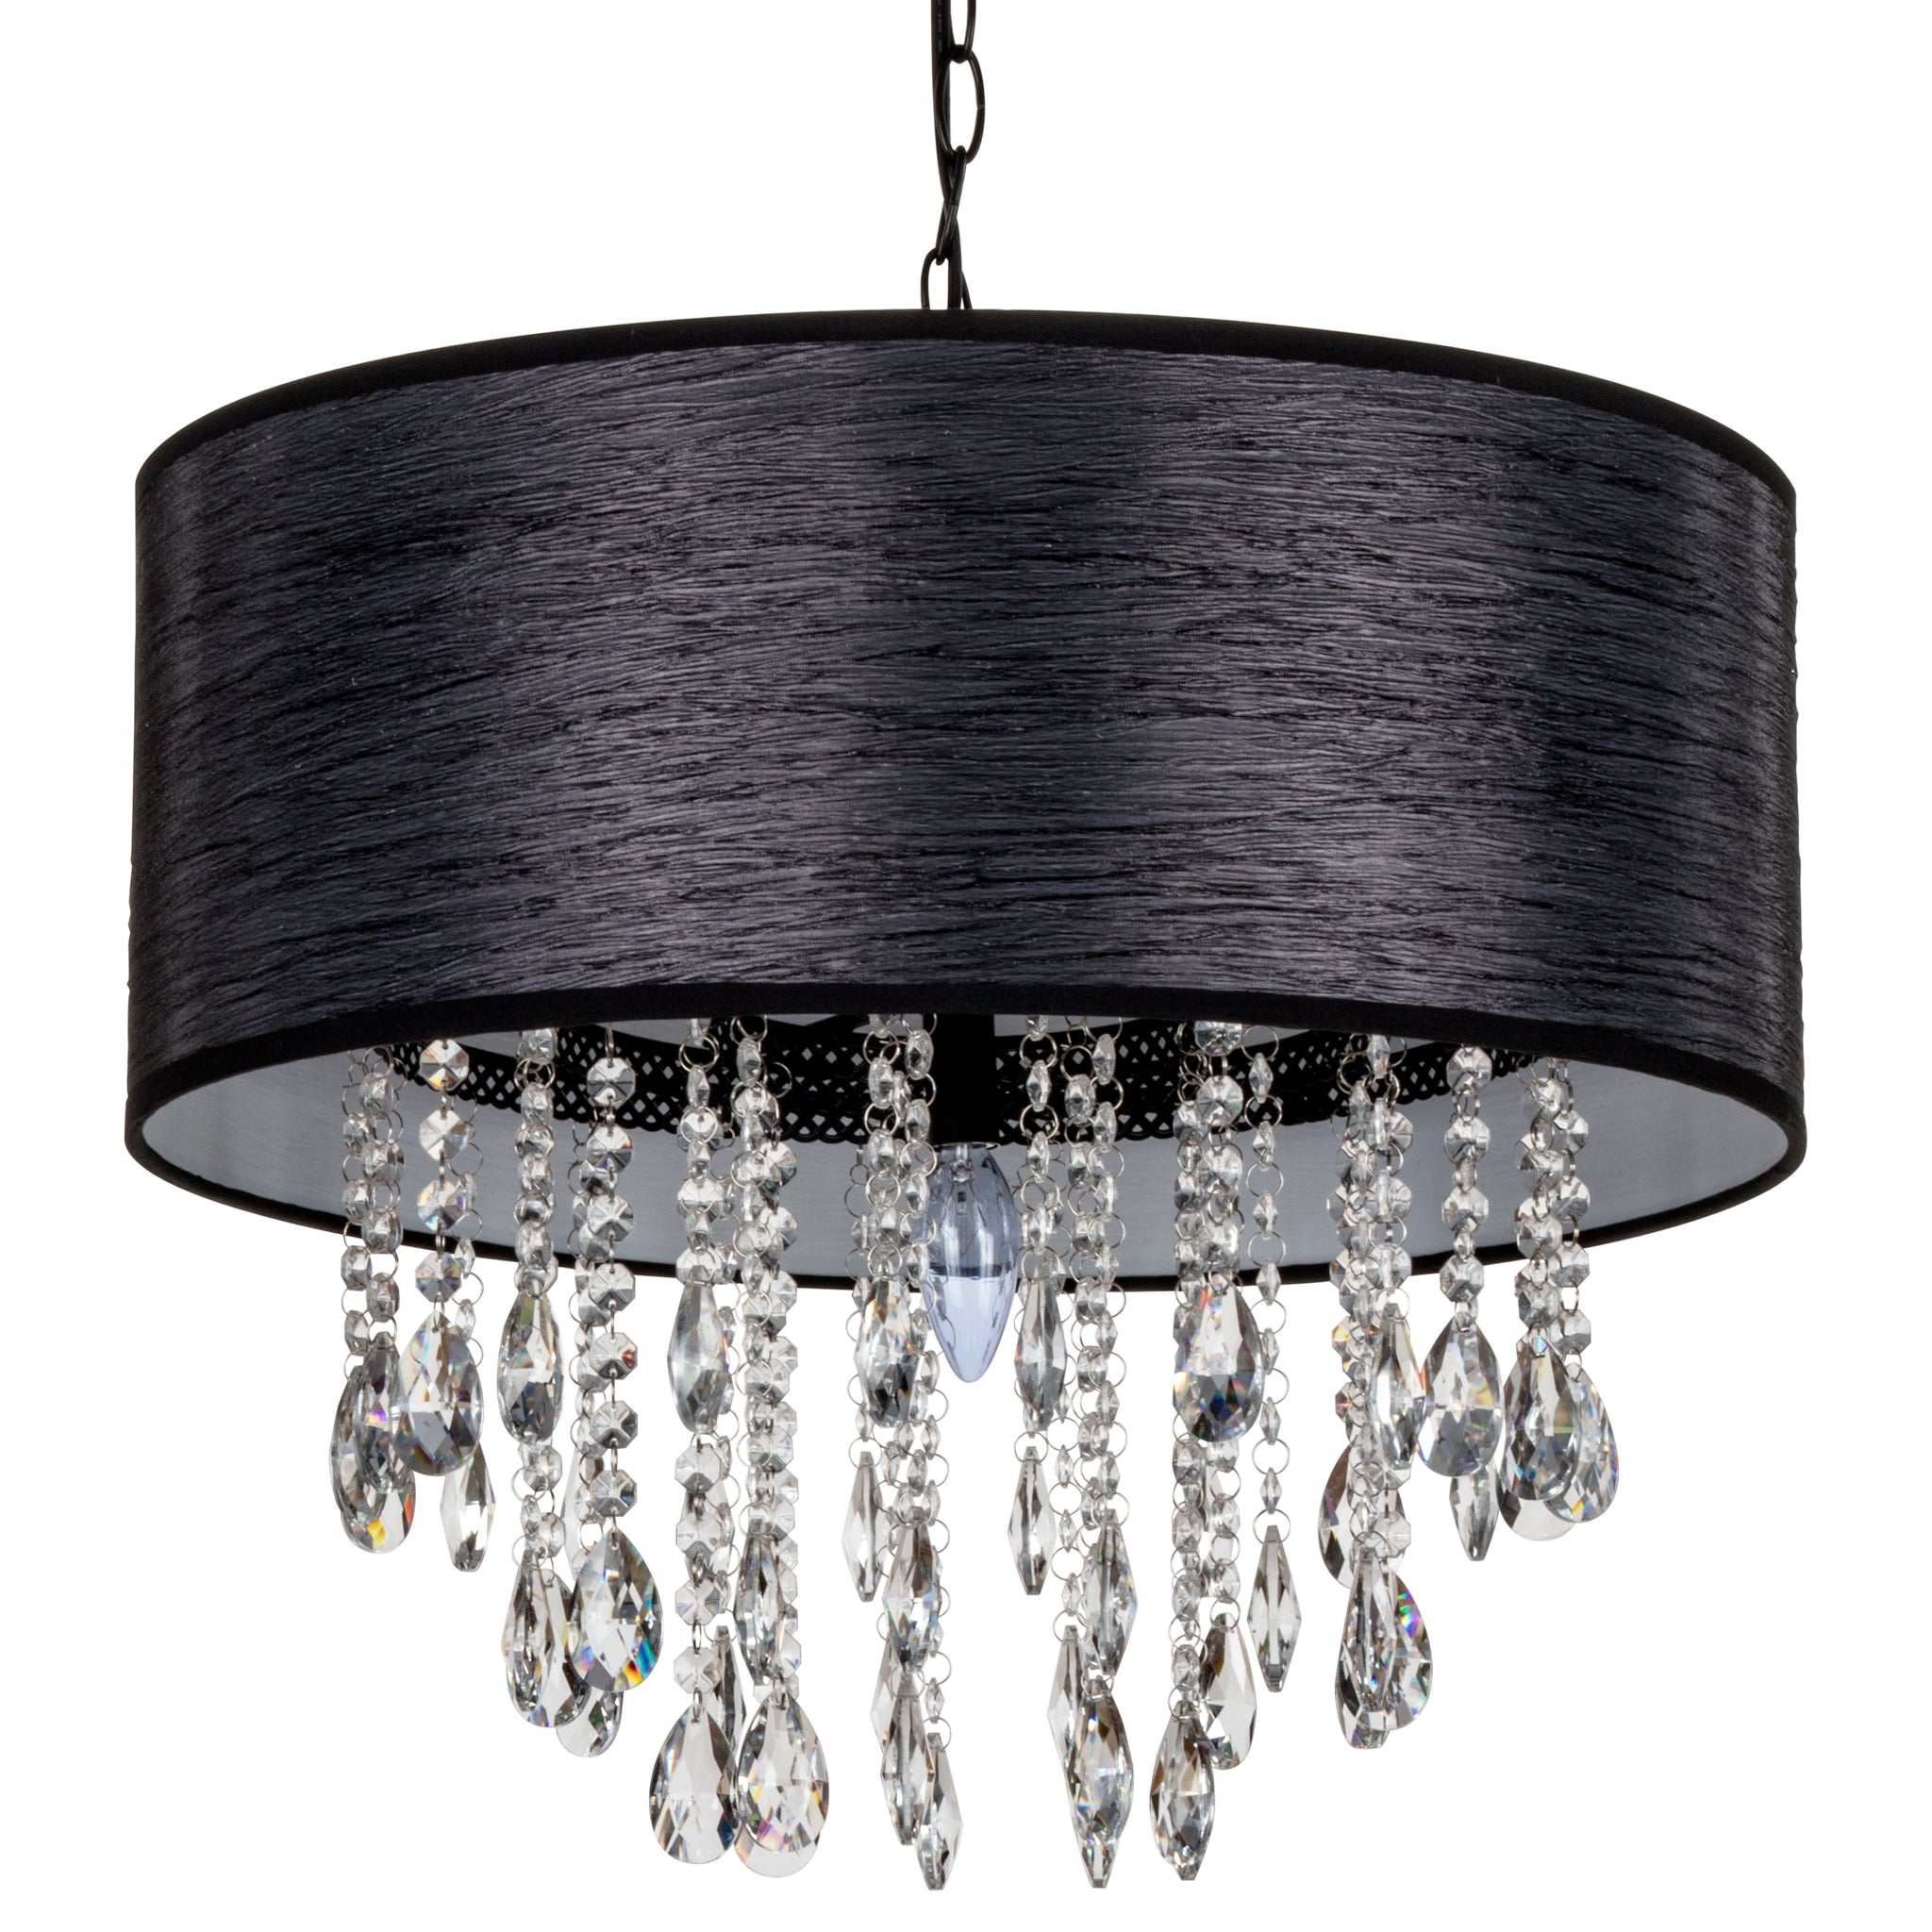 Amalfi Decor Large 5 Light Crystal Plug-In Chandelier with Cylinder Shade (Black)     Wrought Iron Frame with Glass Crystals